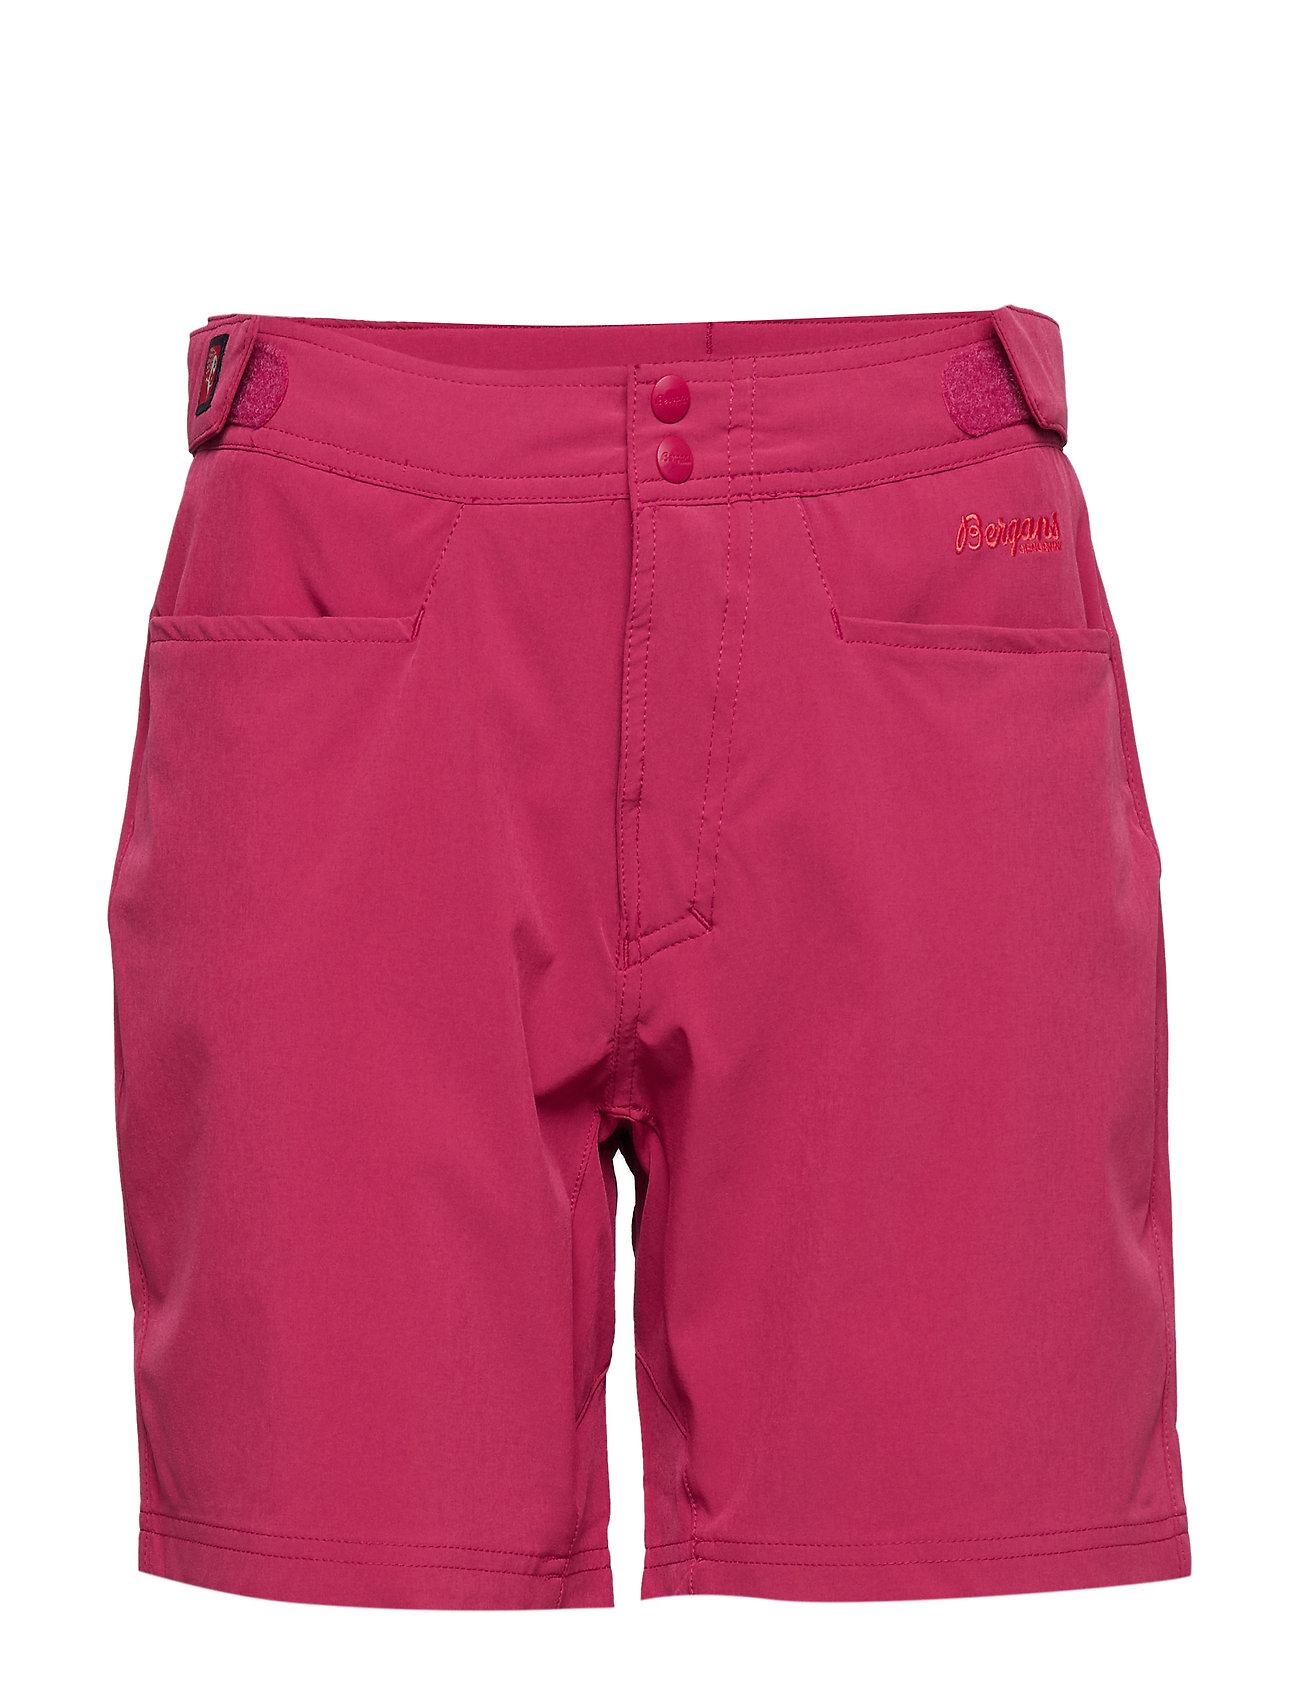 Bergans Cecilie Climbing Shorts - BOUGAINVILLEA MEL/STRAWBERRY